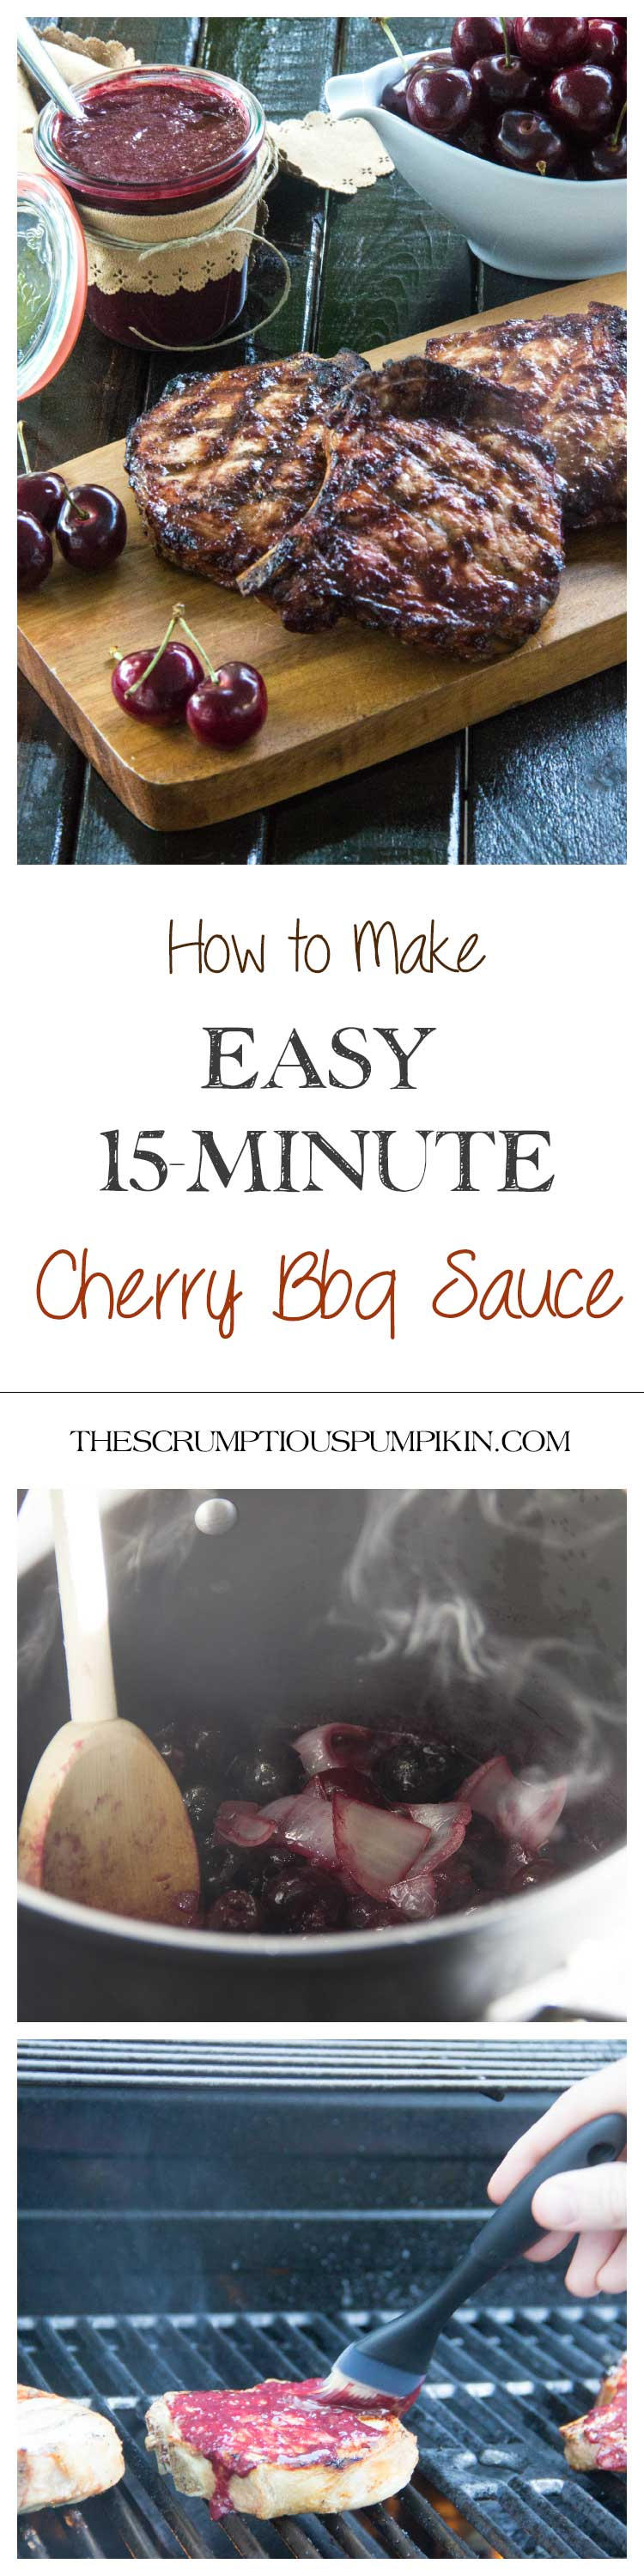 How-To-Make-Easy-15-Minute-Cherry-Barbecue-Sauce